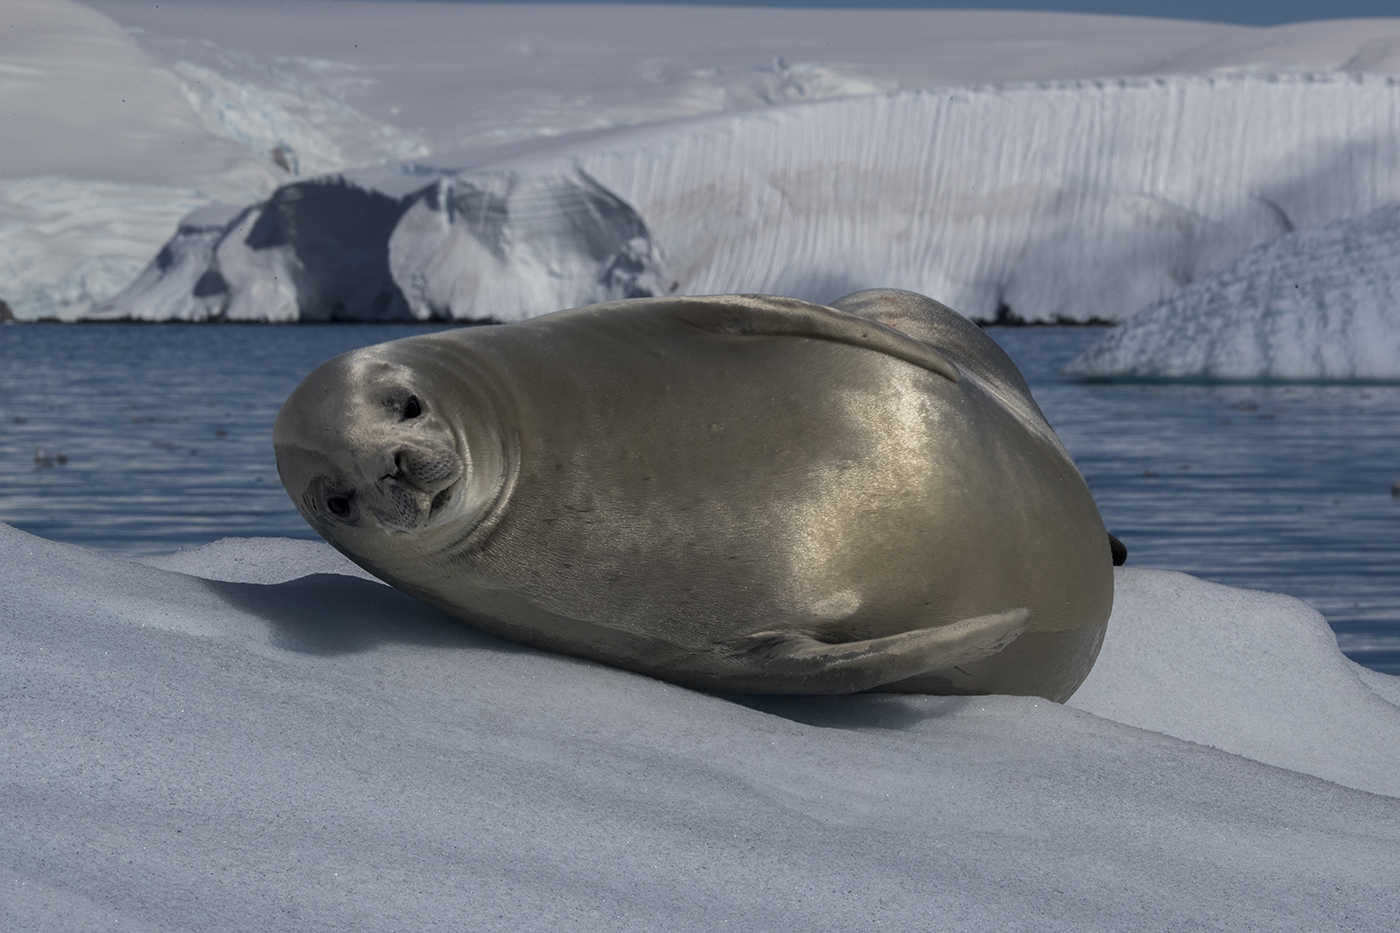 crabeater seal in Antarctica by wildlife photographer Scott Portelli